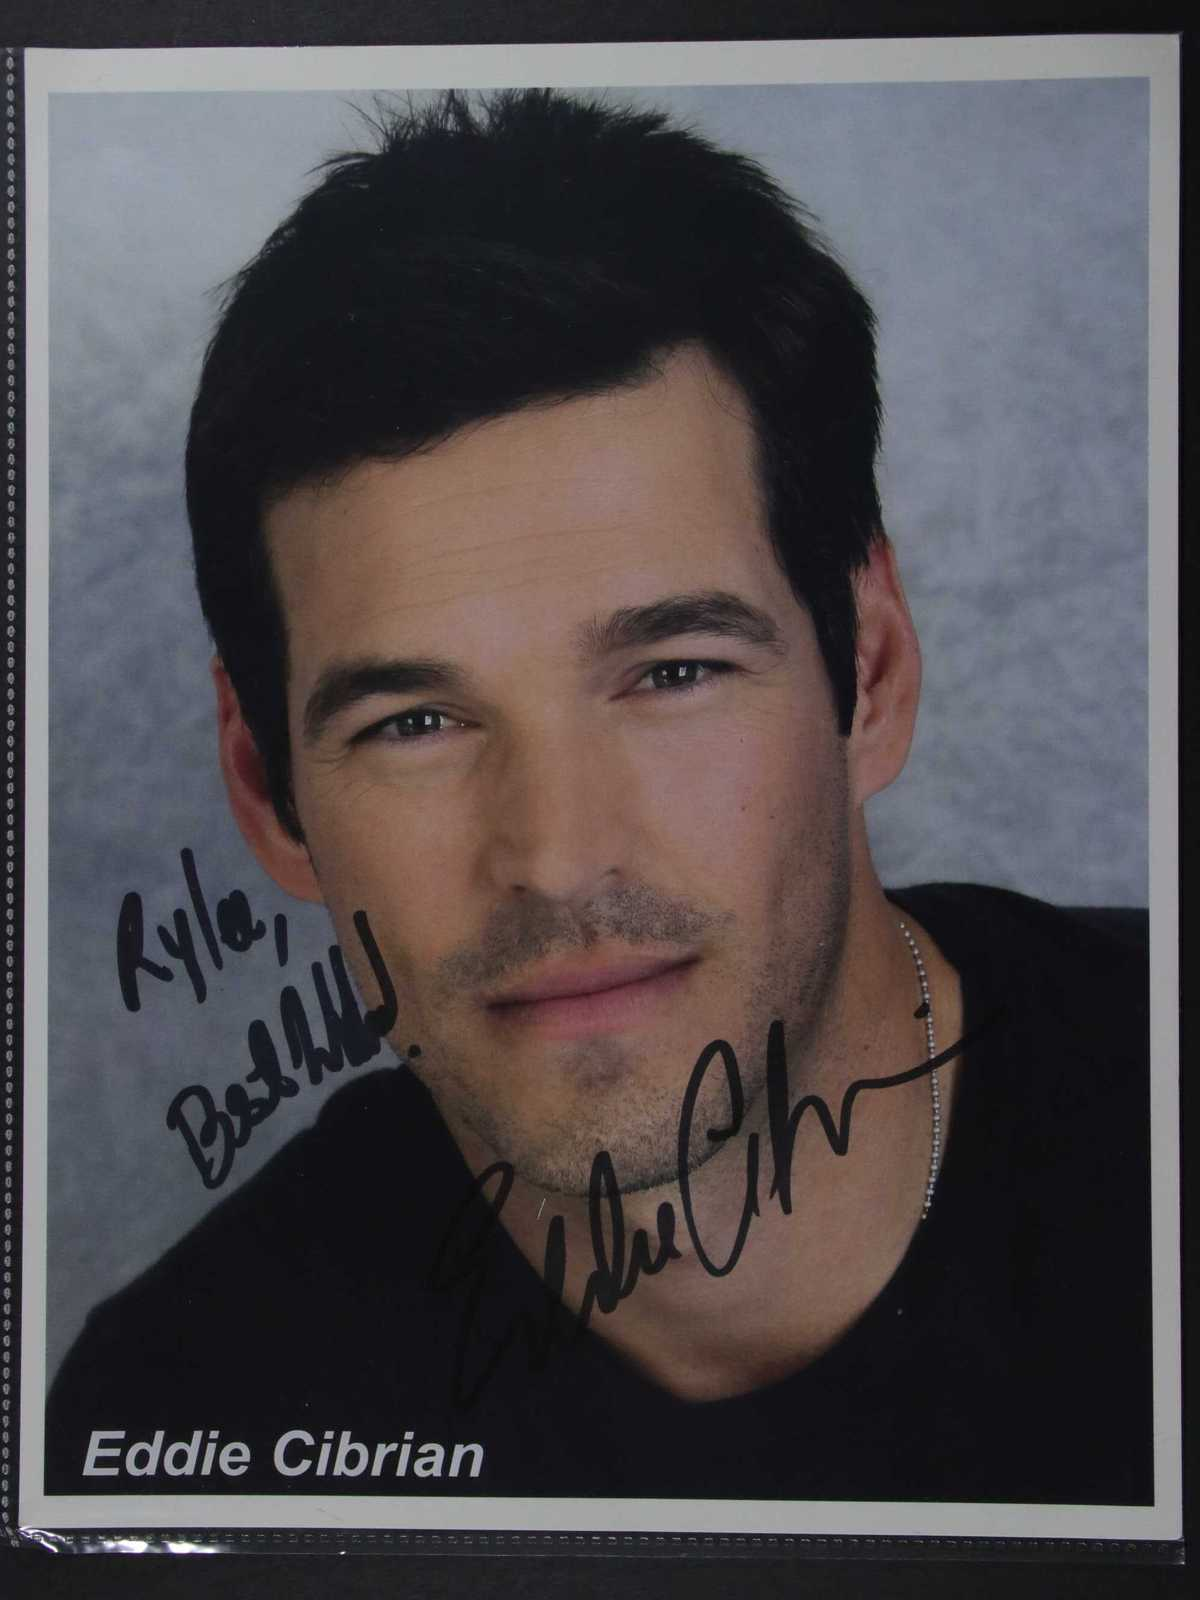 Primary image for Eddie Cibrian Signed Autographed Color 8x10 Photo